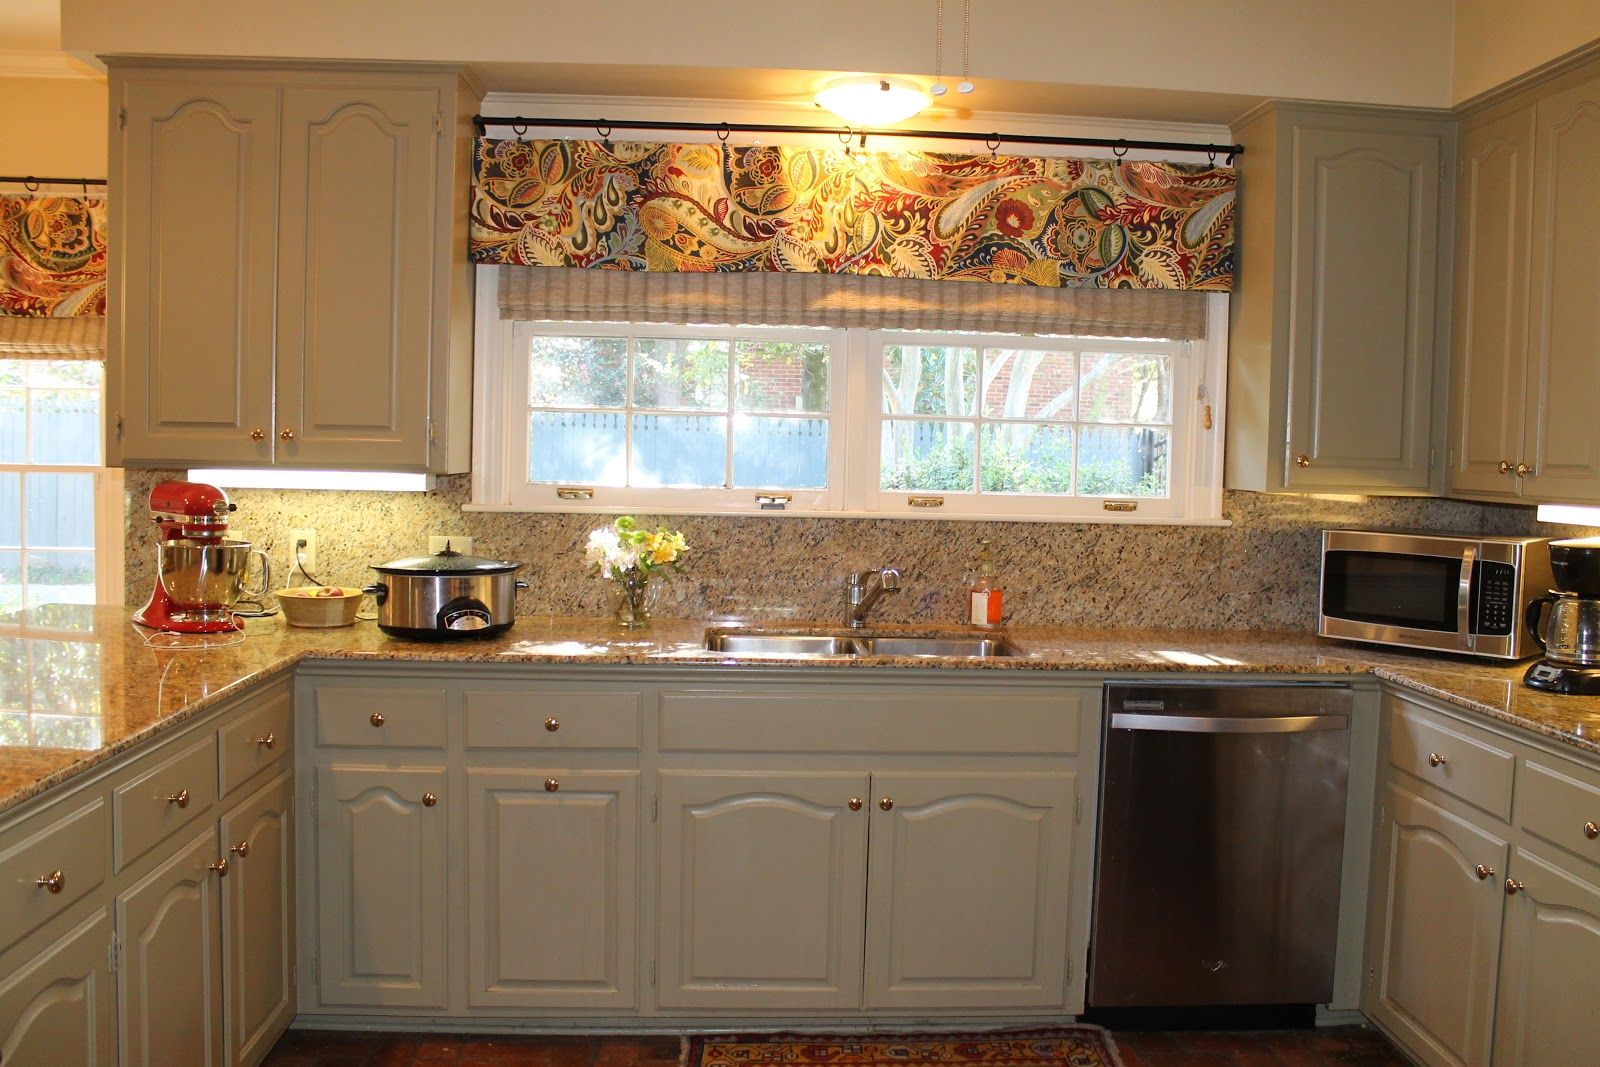 modern valance for kitchen kitchen window treatment ideas images about NEW OFFICE IDEAS on Pinterest Striped walls Kitchen valances and